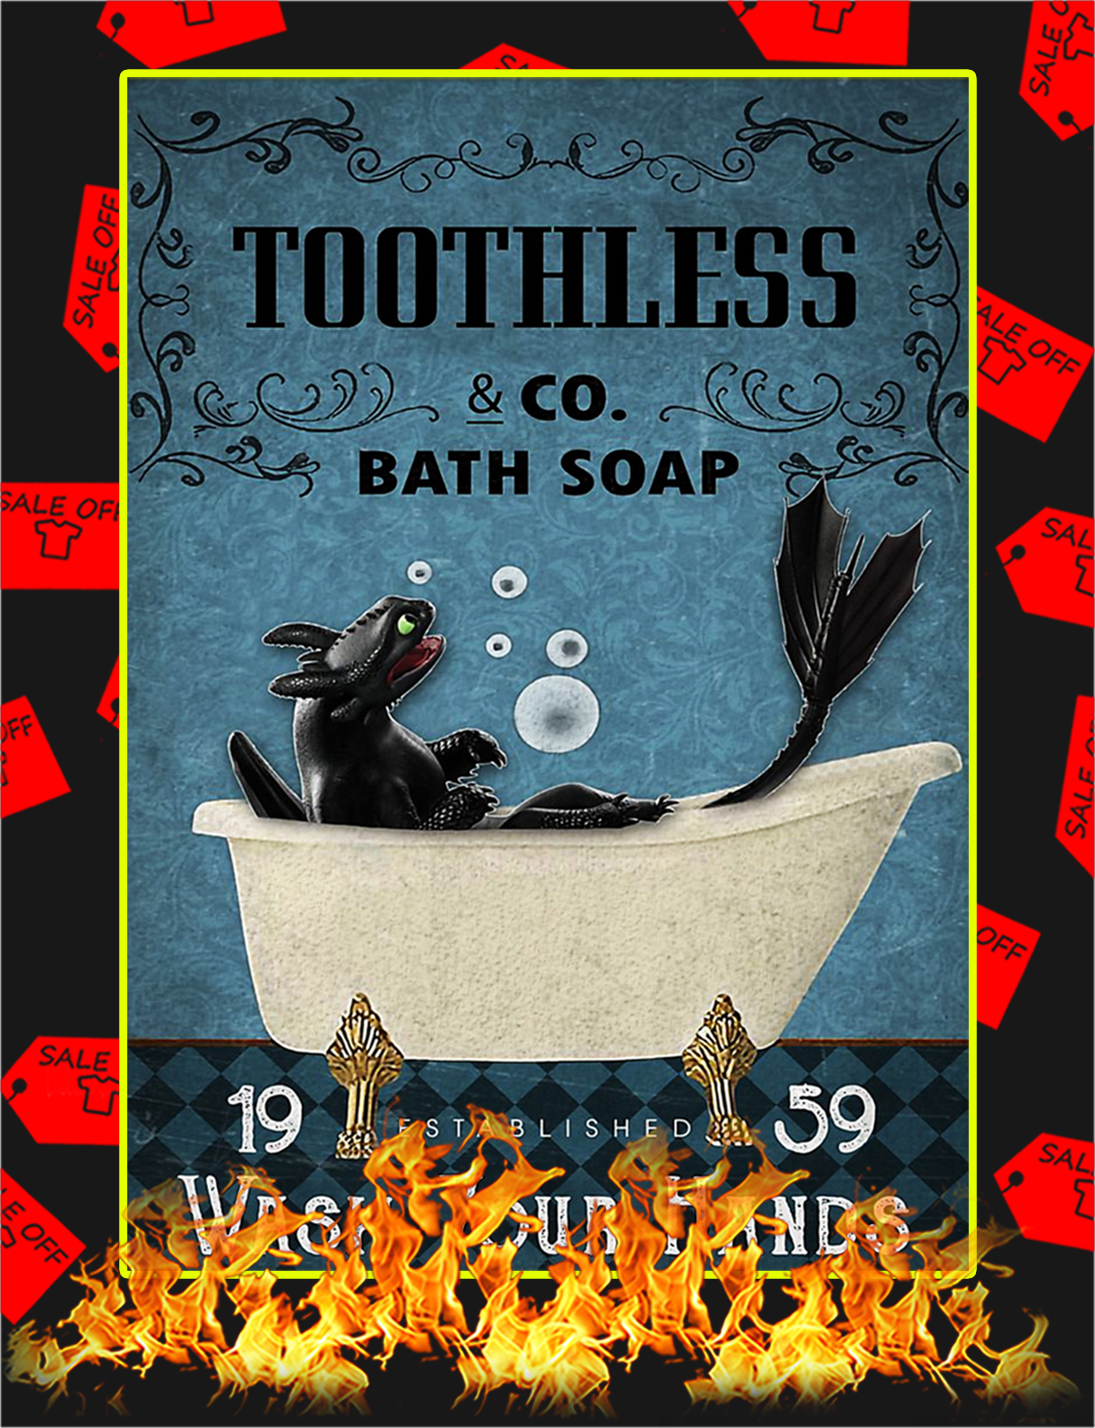 Bath soap company Toothless poster - A2